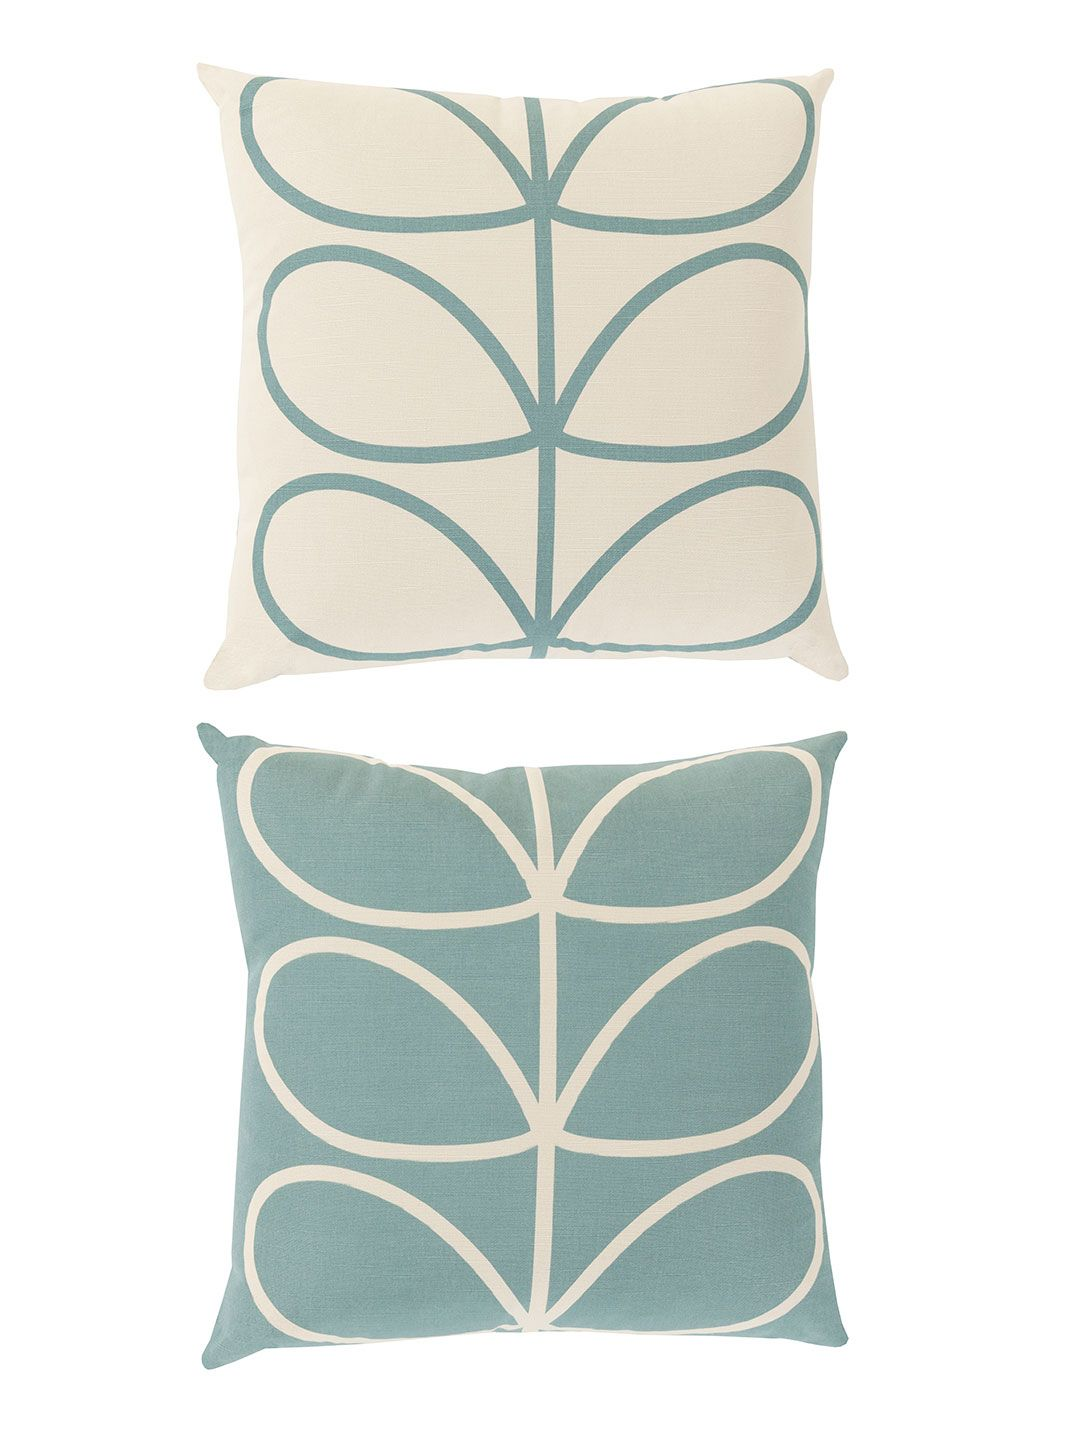 Linear Stem Reversible Decorative Pillow By Orla Kiely House At Gilt